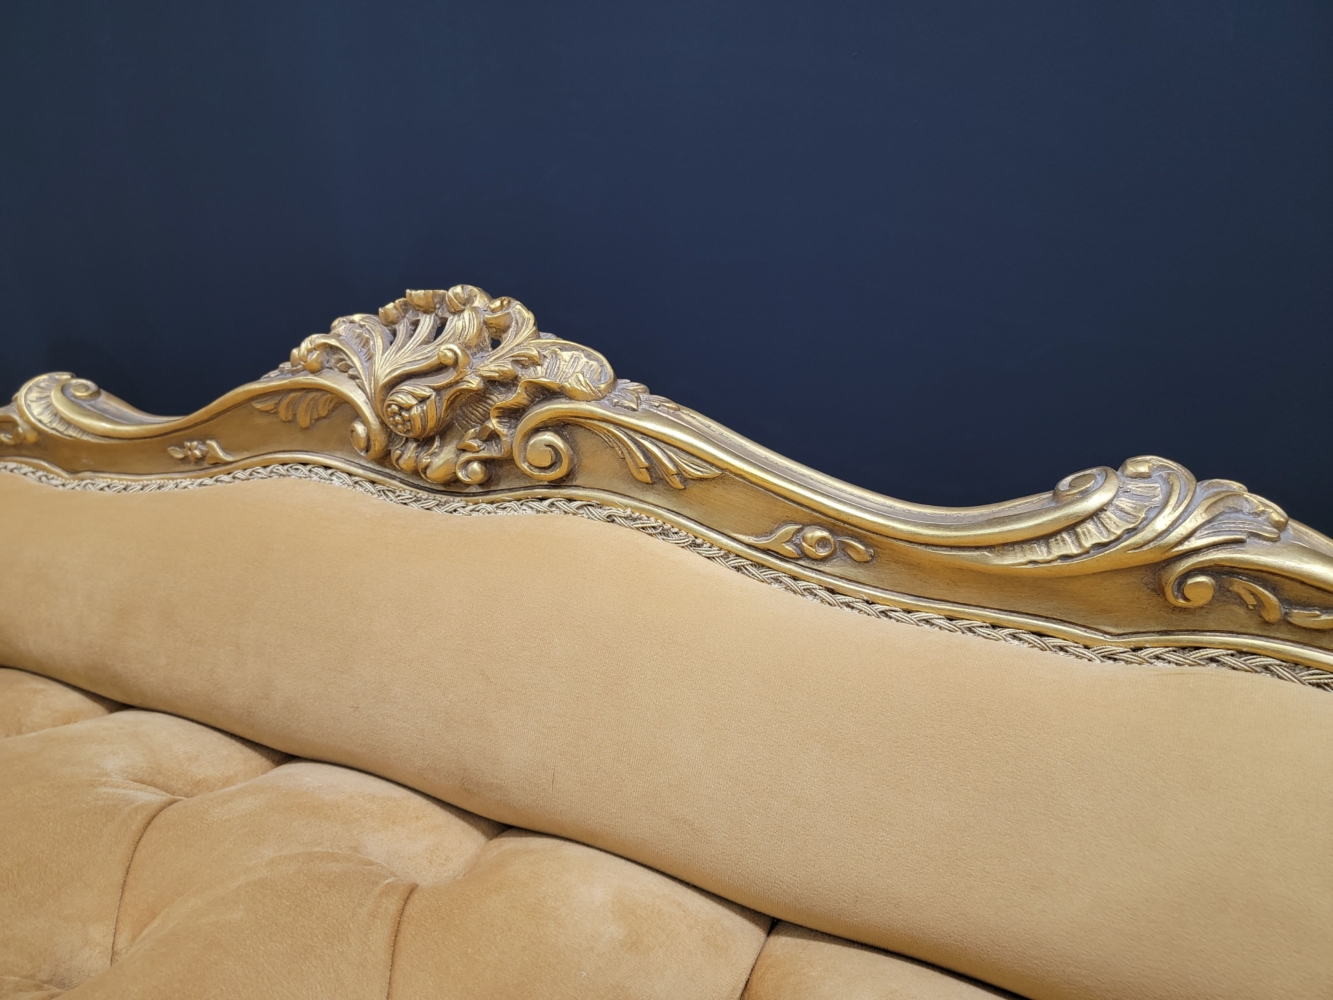 French Style Settee/ Aged 24k Gold Leaf /Hand Carved Wood Frame / Tufted Honey Yellow Velvet